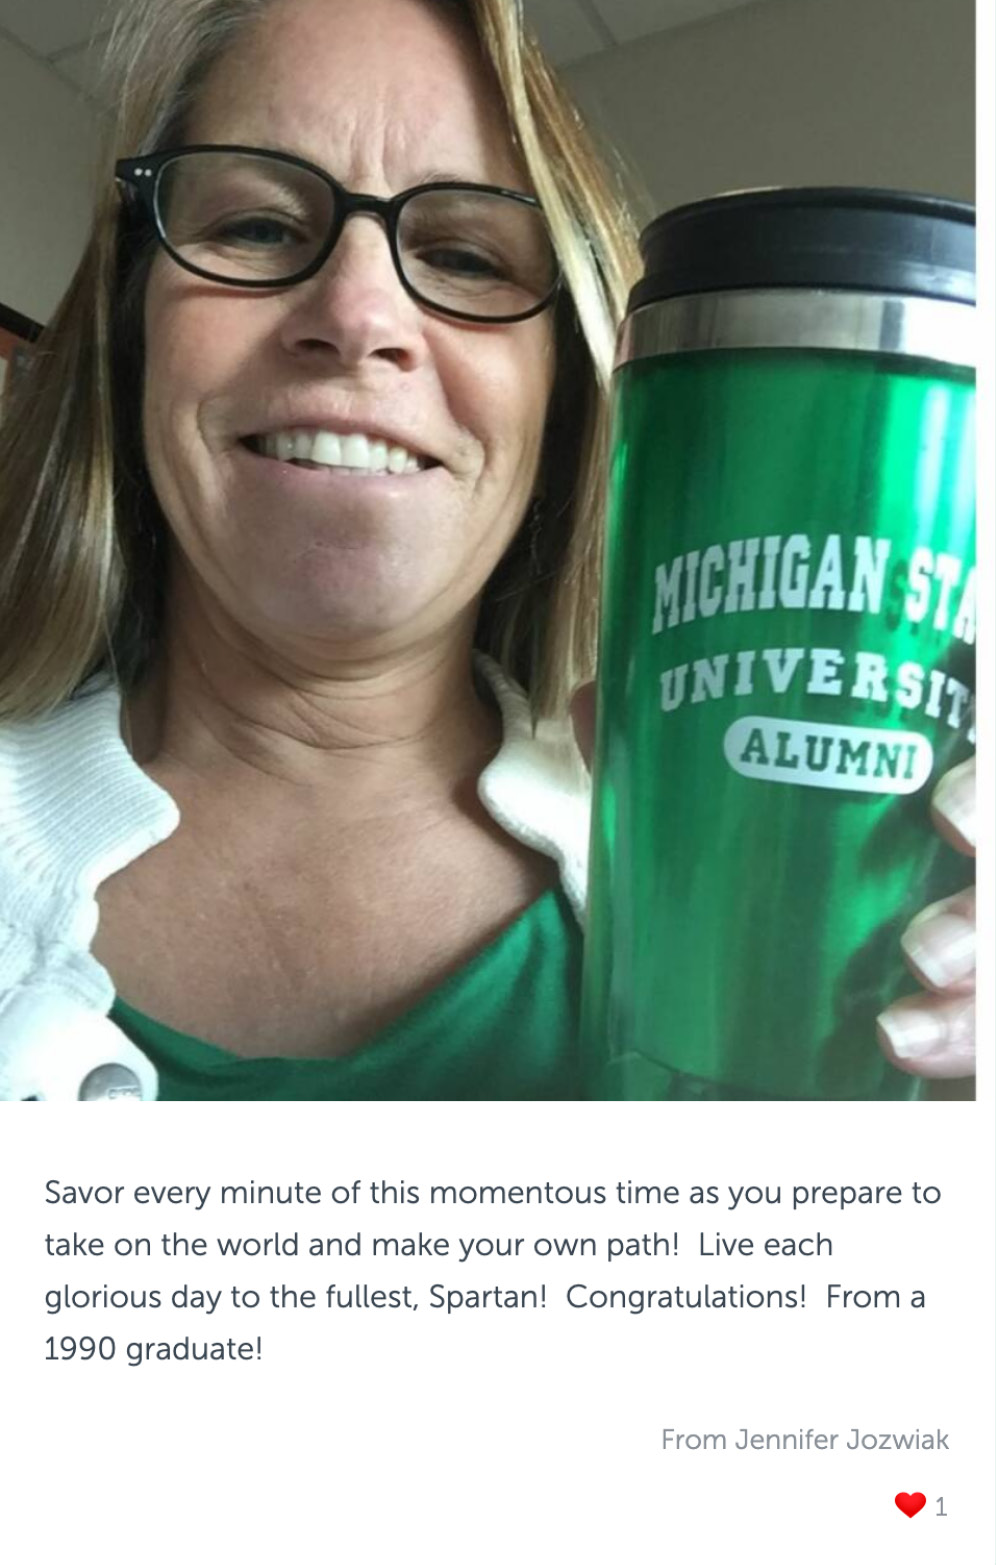 """Post with photo of a woman holding cup that reads """"Michigan State University Alumni"""", and congratulatory message"""